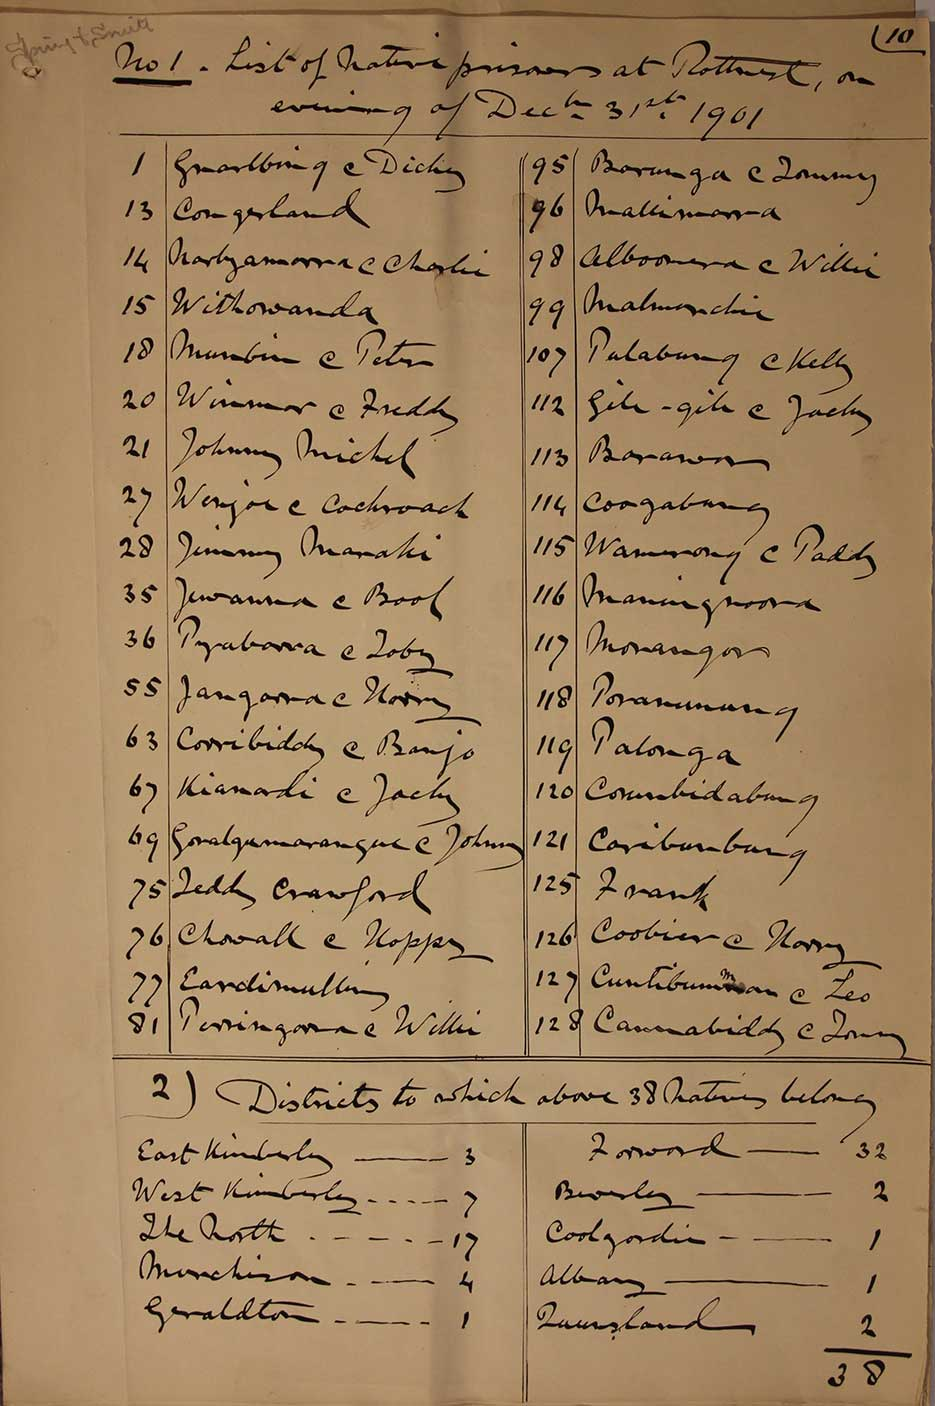 Chief Secretary's Department list of Aboriginal prisoners at Wadjemup as at 31 December 1901